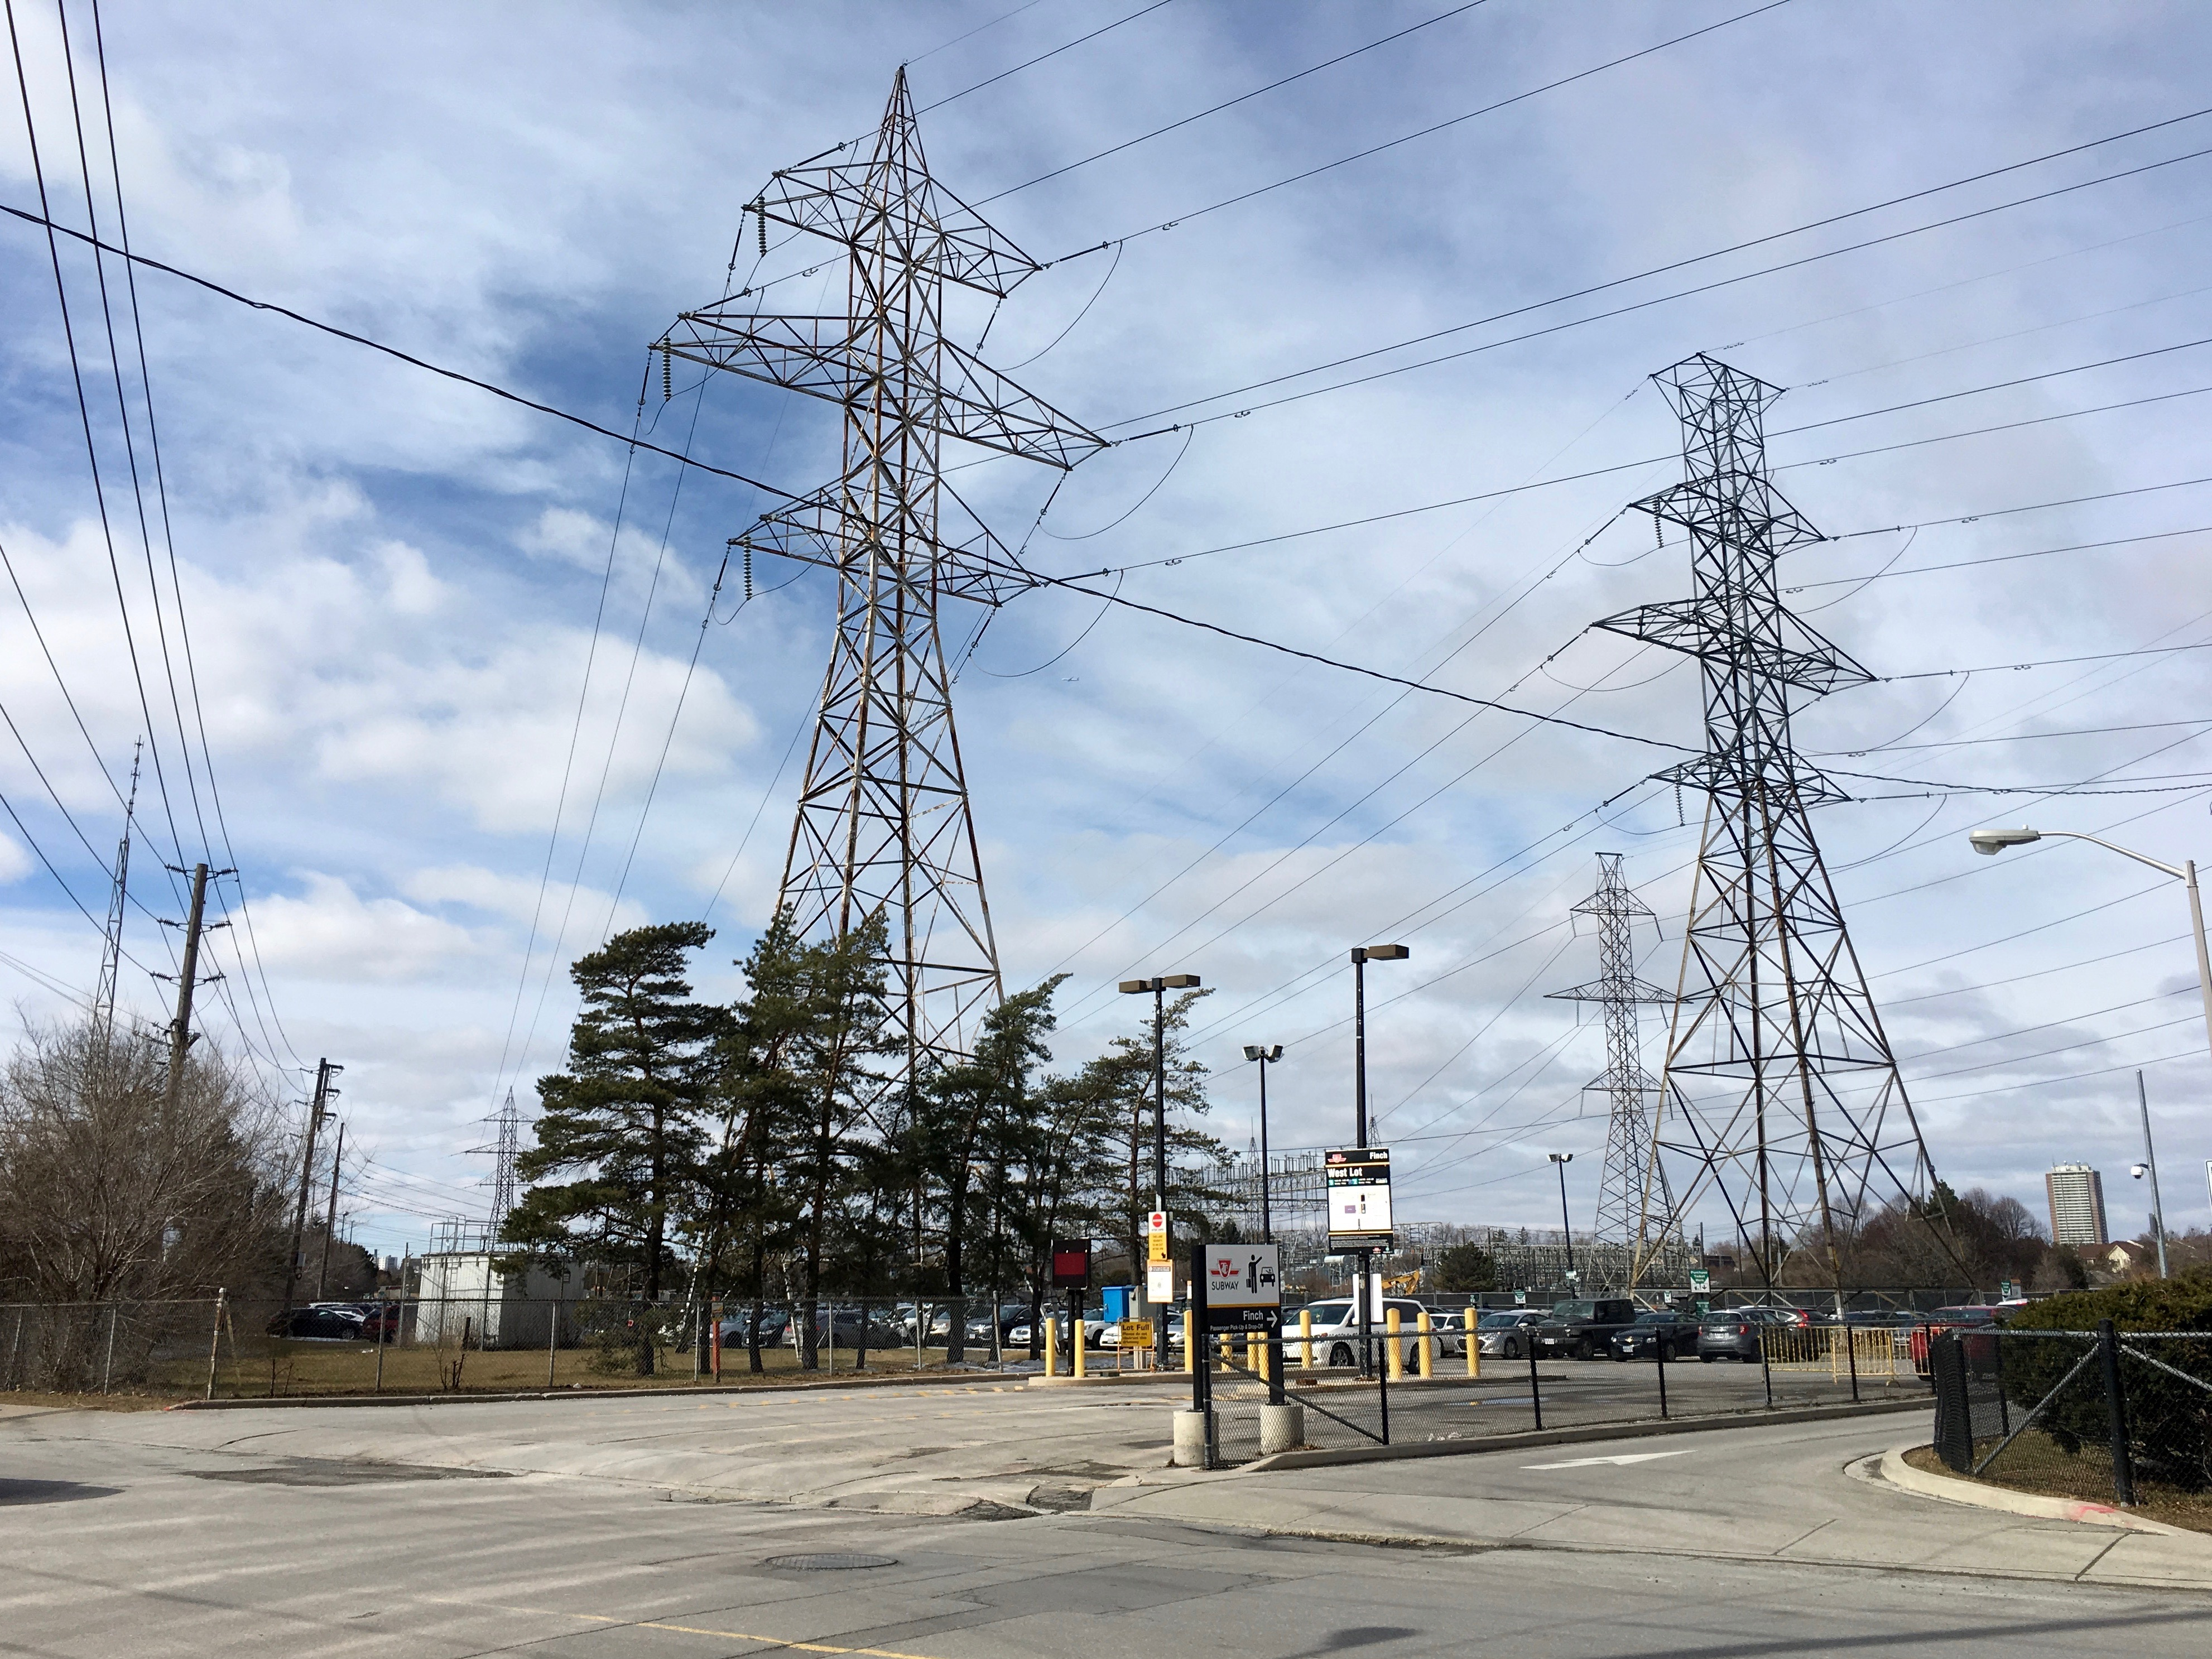 1:14 p.m. March 2, 2018. Hydro poles on Hendon Avenue, west of Yonge Street. This area, just north of Finch Avenue, is the northern boundary of the area being studied for bike lanes.